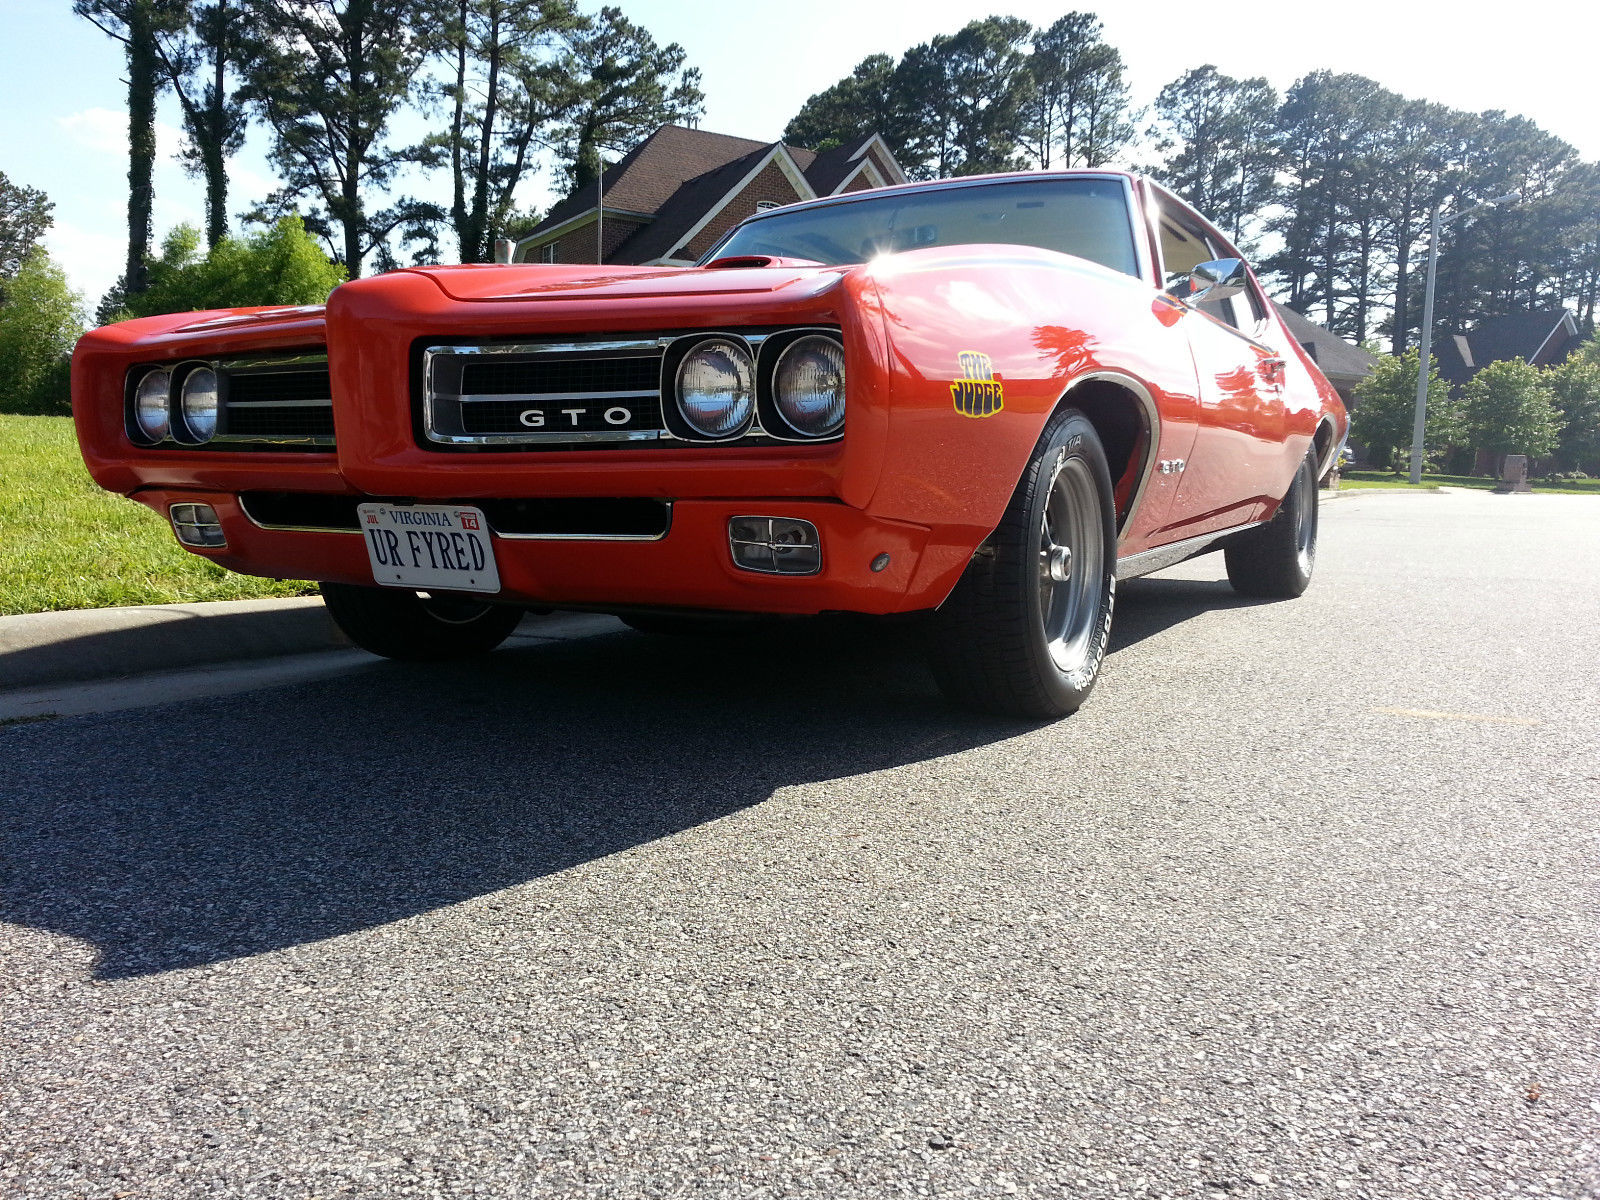 1969 Pontiac GTO - Project Cars For Sale